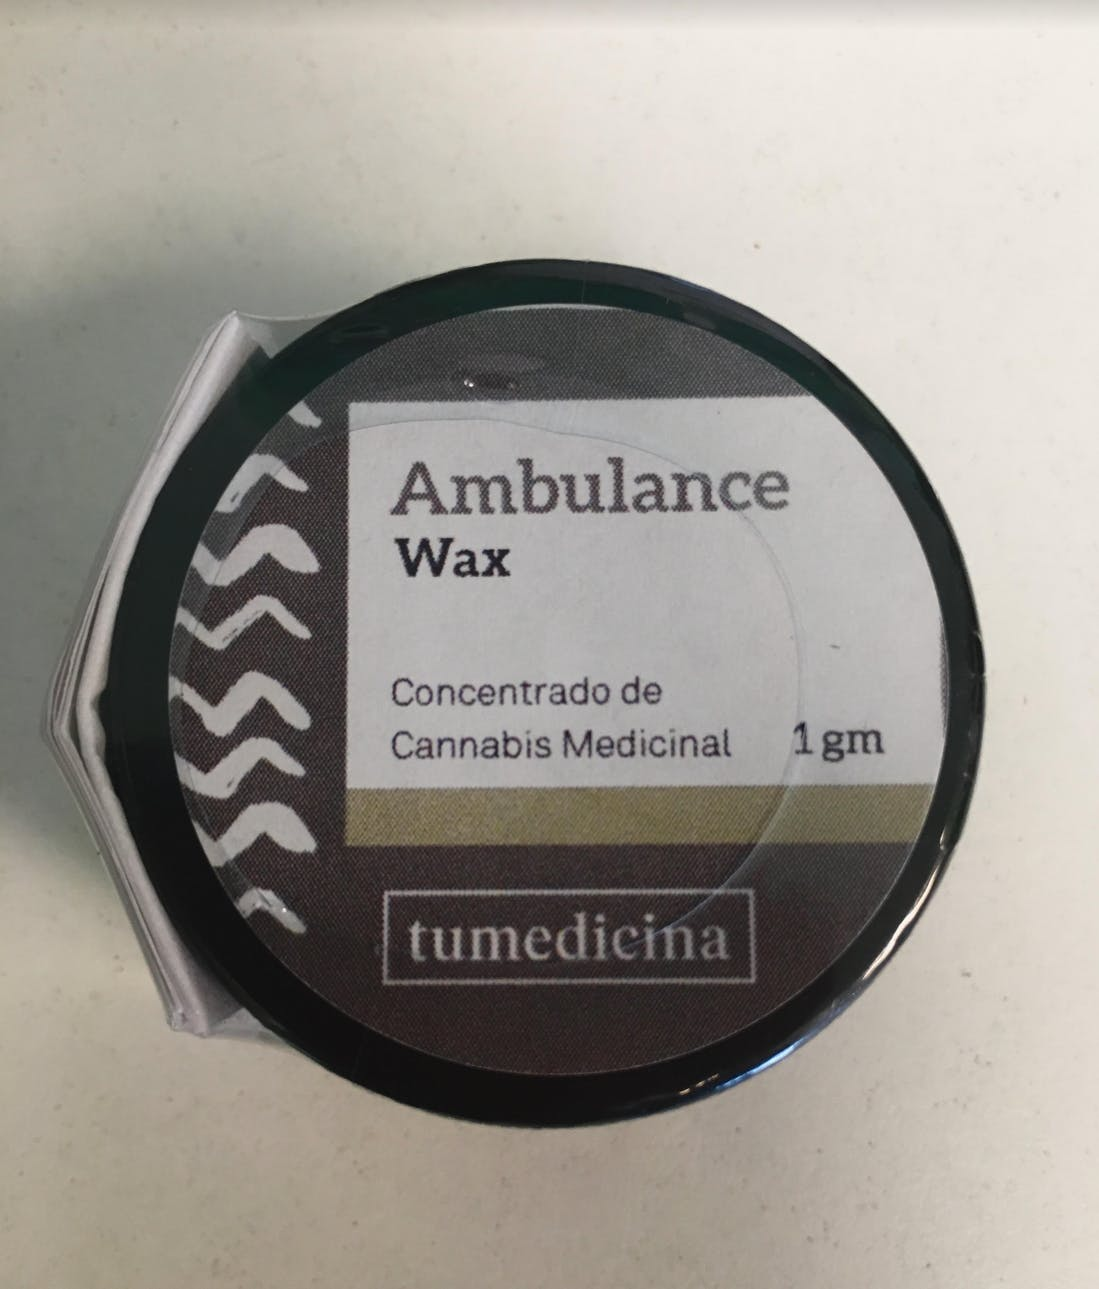 wax-ambulance-cbd-wax-cbd-dominant-wax